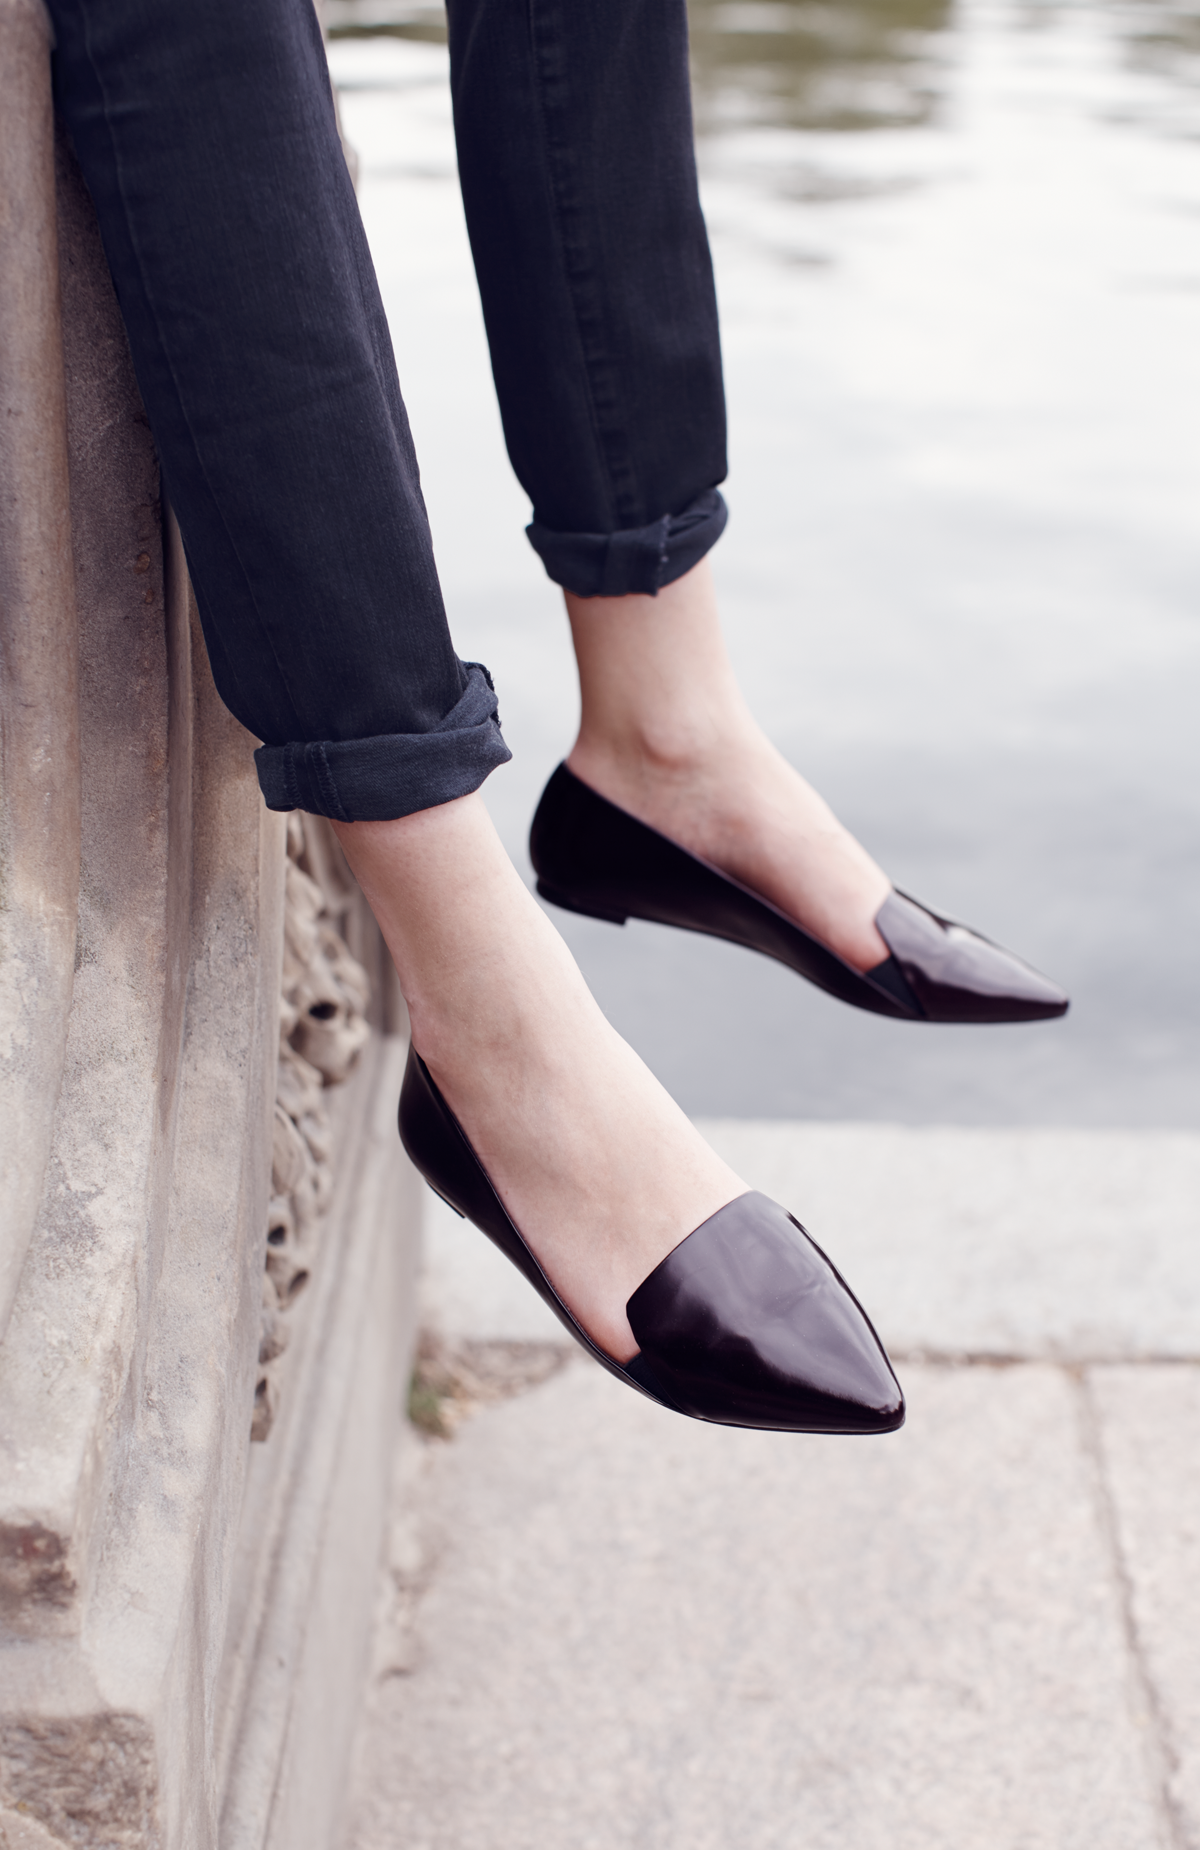 509878de37 Black jeans and classic flats. | shoes | Fashion shoes, Shoes és Fashion